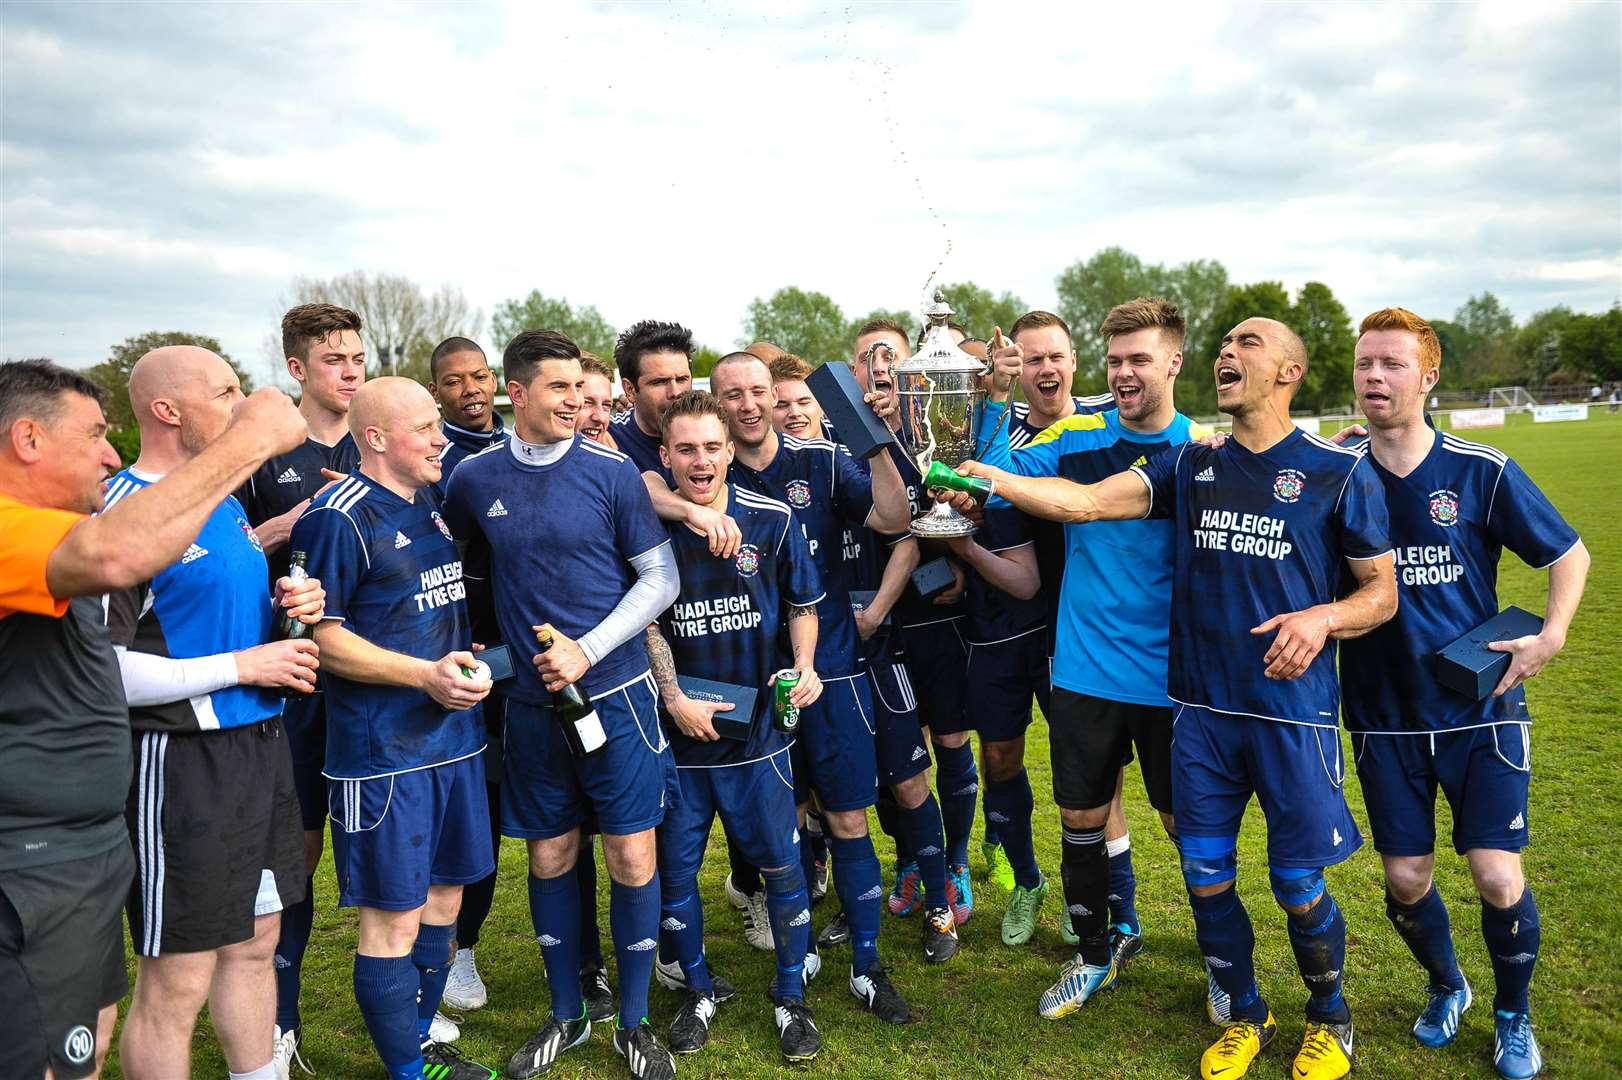 Hadleigh United players and staff celebrate with their medals and the Premier Division trophy following victory against MildenhallPictures: Ben Carmichael